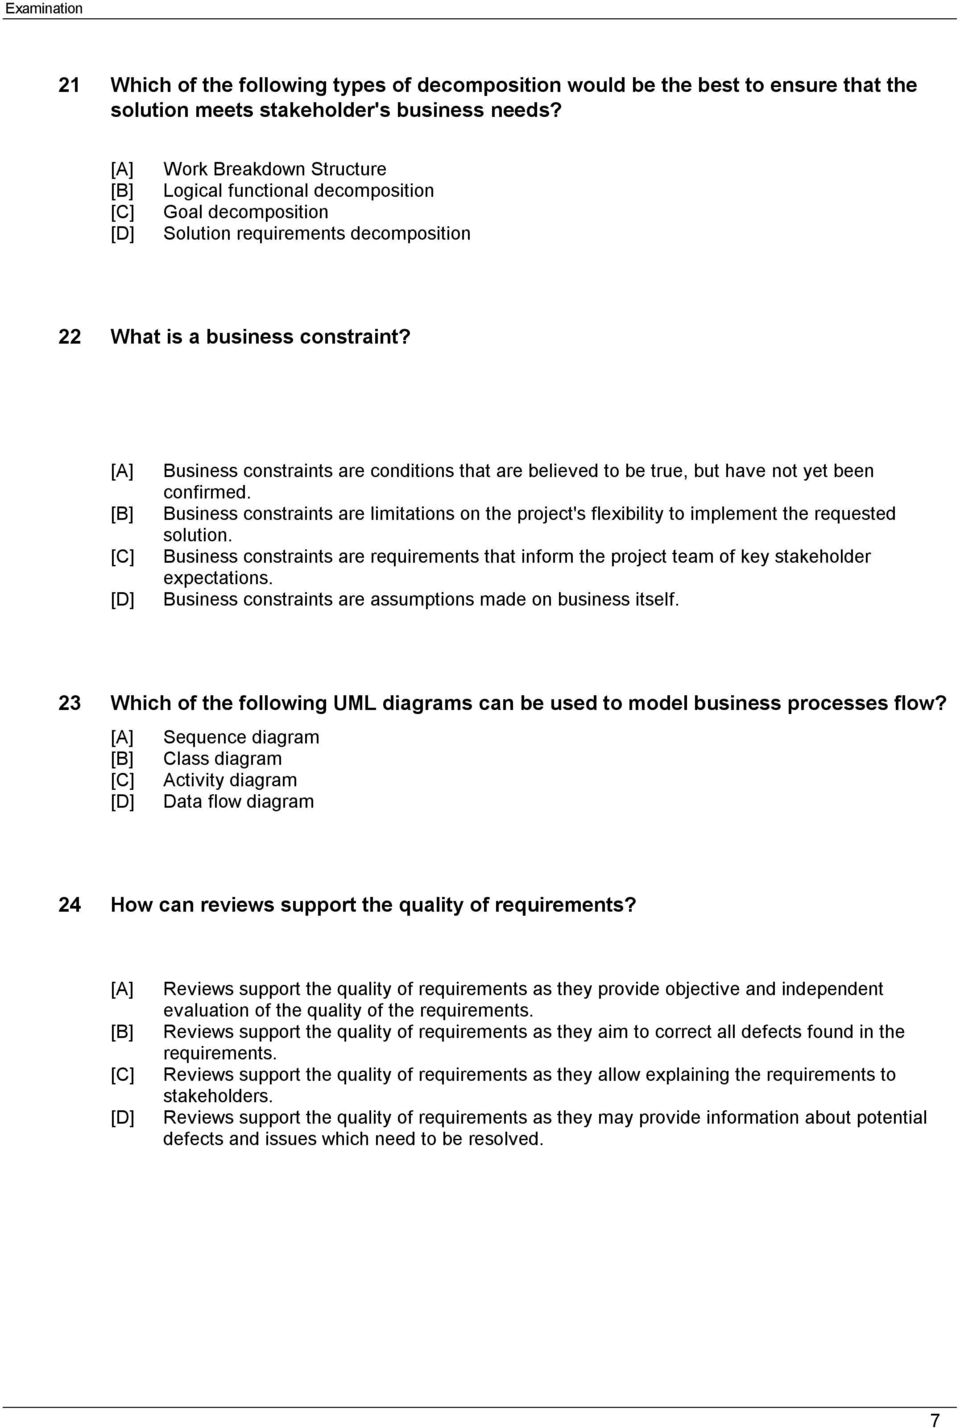 Examination Subject Version Pdf Process Flow Diagram Vs Sequence Business Constraints Are Conditions That Believed To Be True But Have Not Yet Been